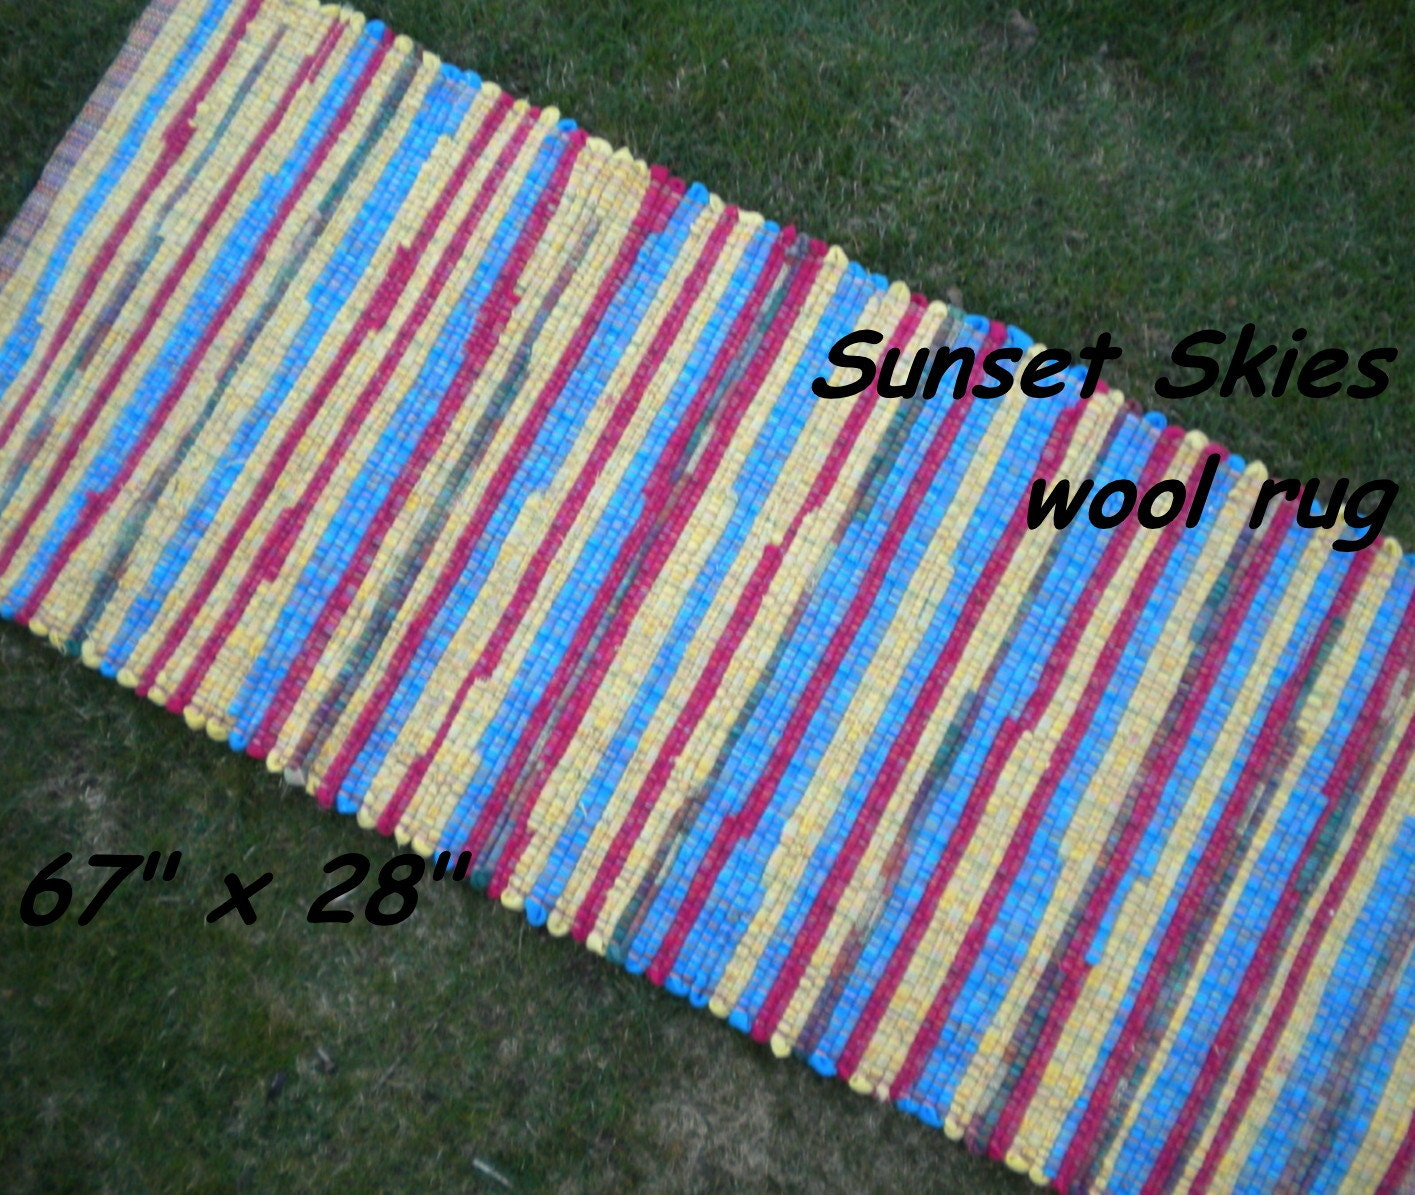 Handwoven Sunset Skies THICK Wool Fabric Rag Rug 67